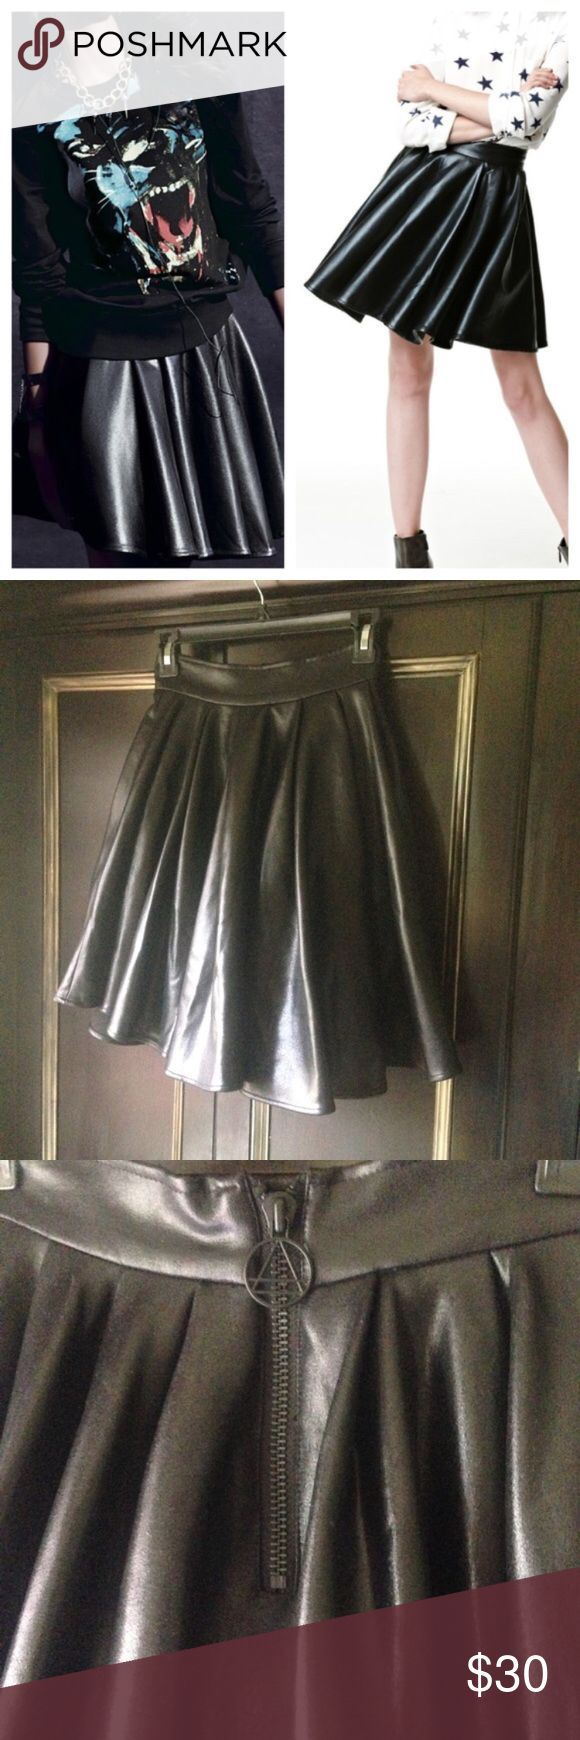 """Eleven Paris Faux Leather Skater Skirt EUC! Gorgeous quality, it's just too small for me so I'm reposhing, 25"""" waist, 19.5"""" long, fits like an xxs or 0, faux leather skater skirt, Zara for similar style (this is a higher end brand) Zara Skirts"""